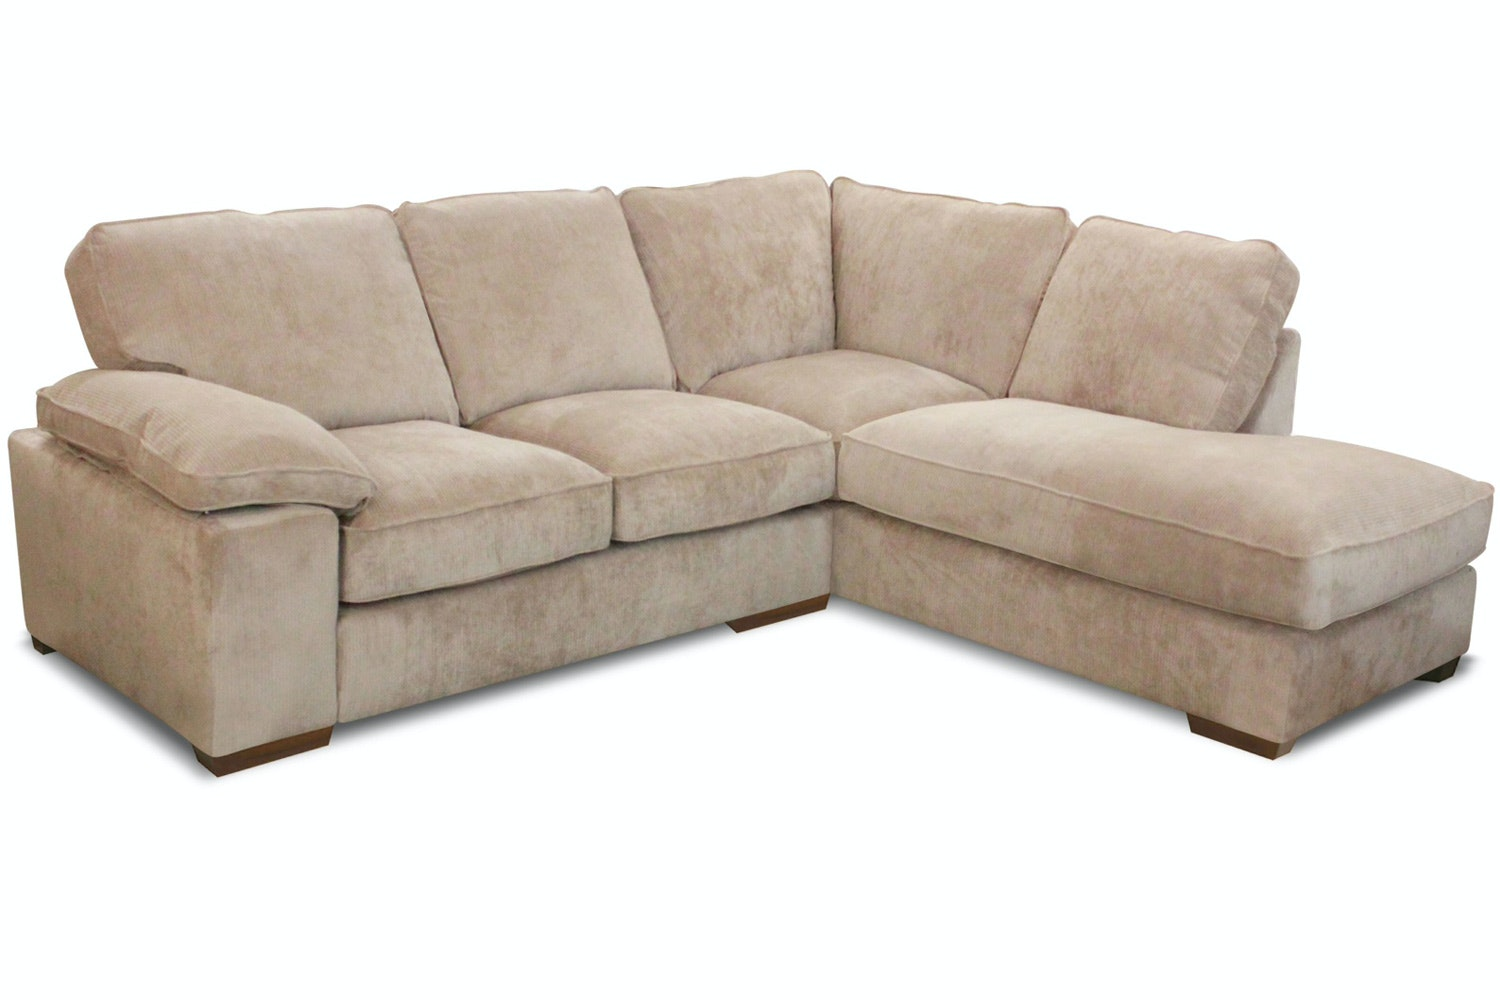 Utah Corner Sofa with Sofa Bed